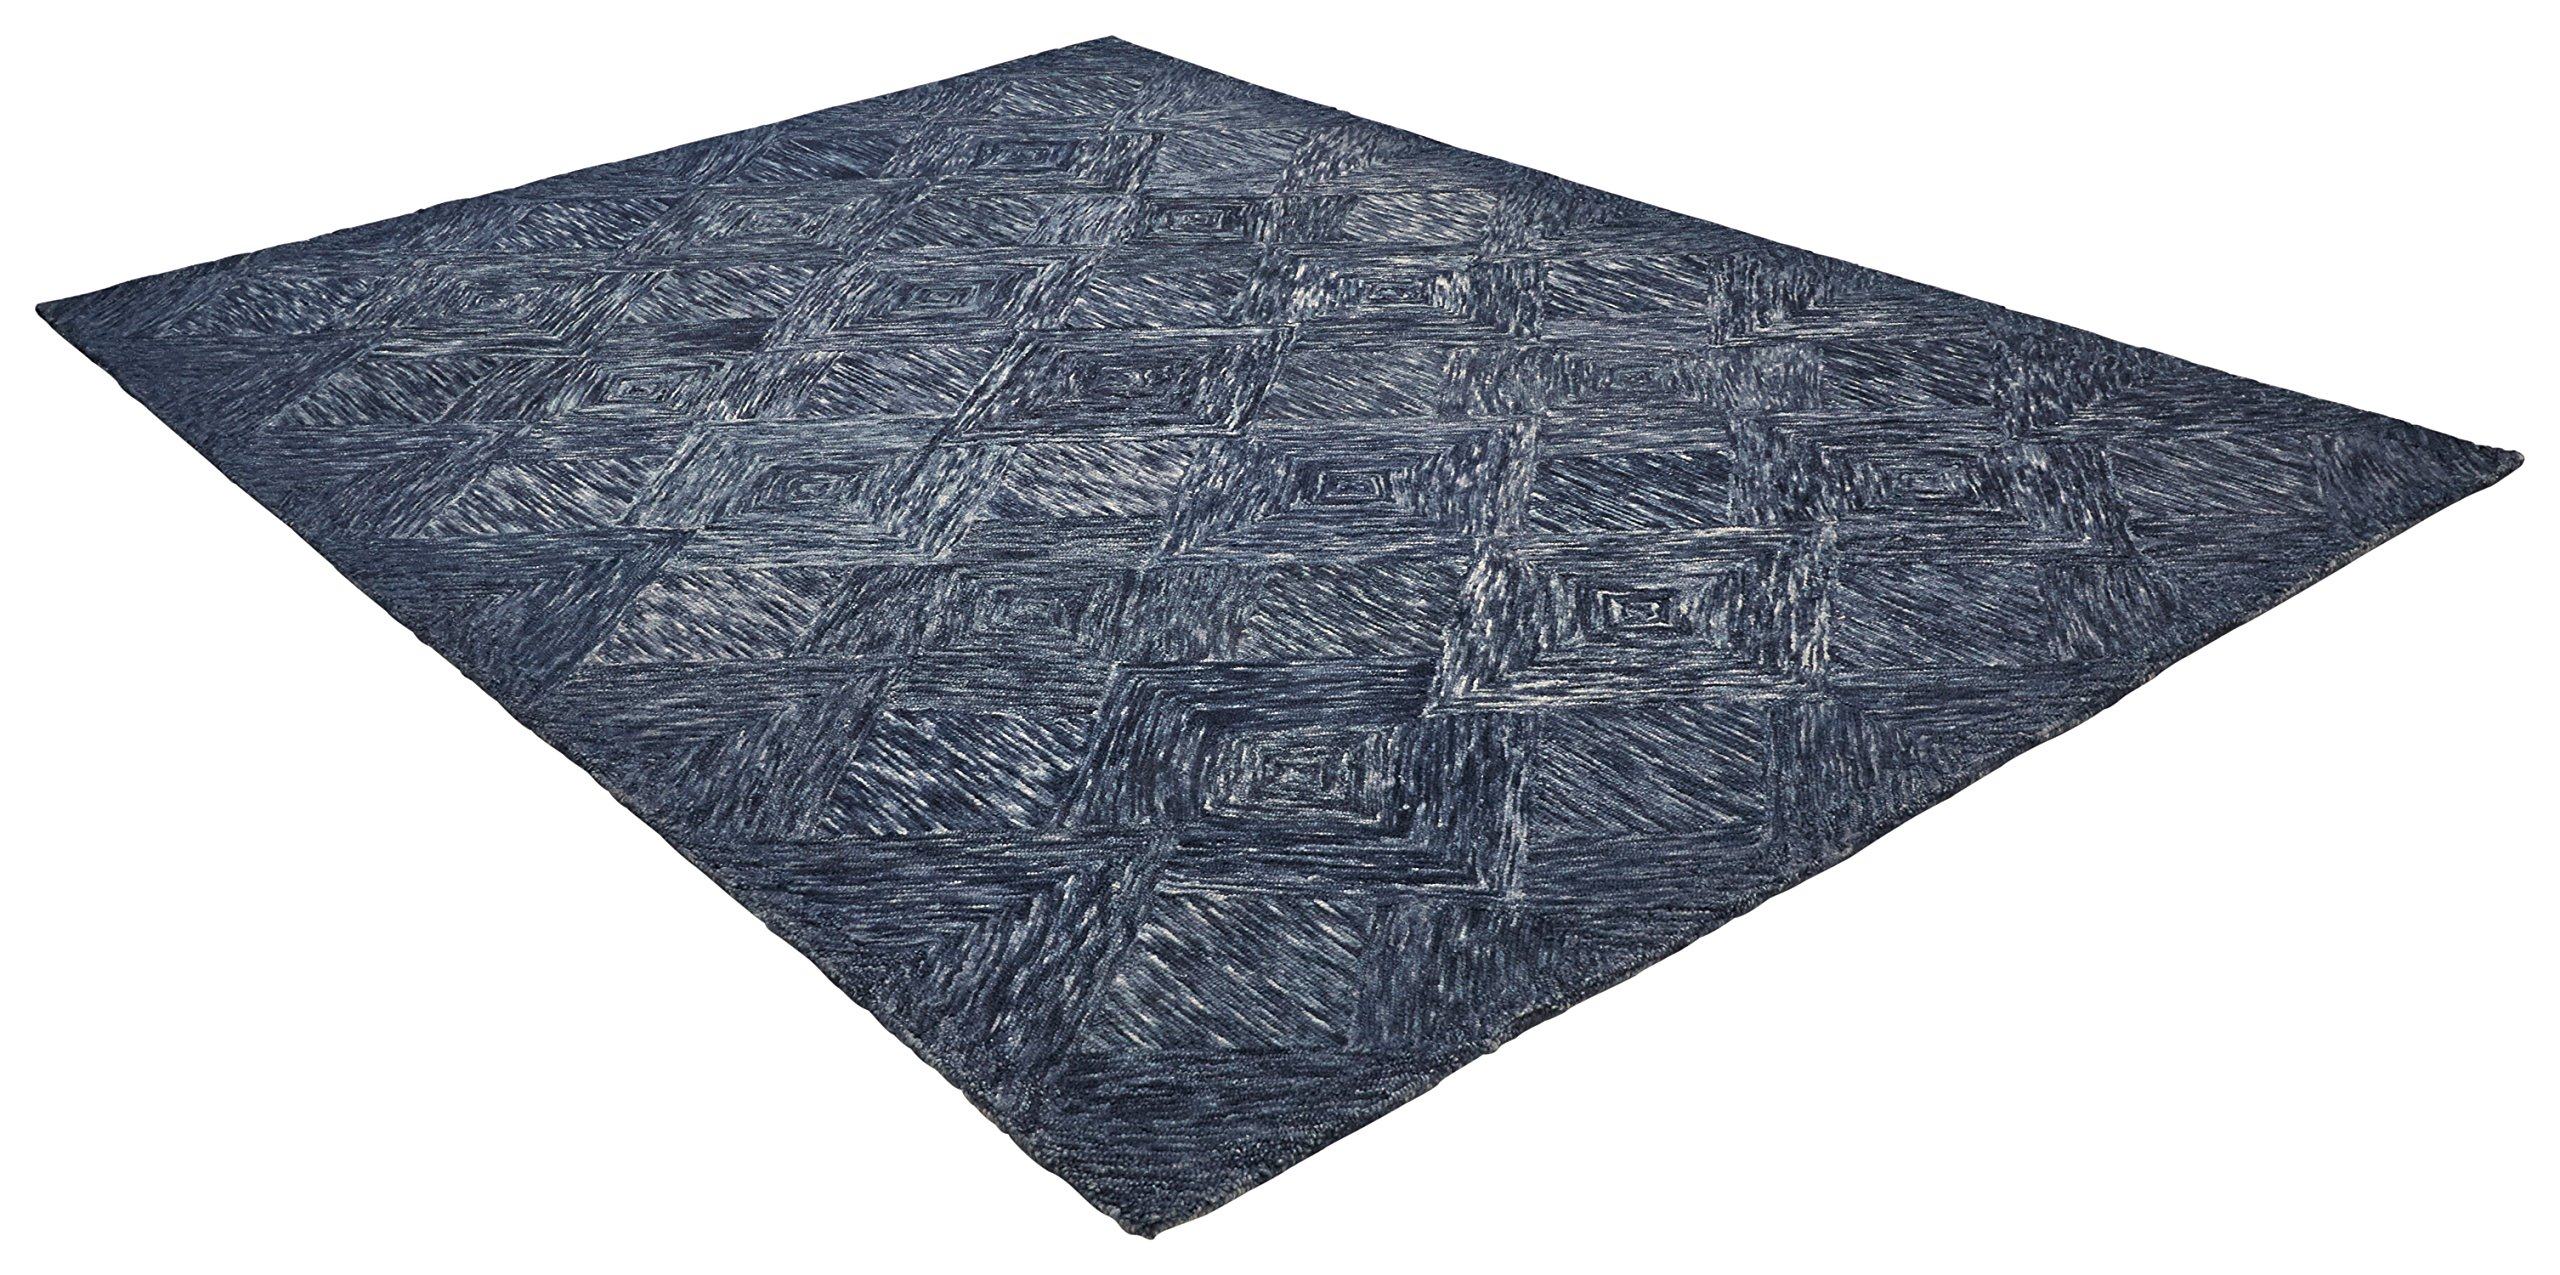 Rivet Motion Patterned Wool Area Rug, 8' x 10'6, Denim Blue by Rivet (Image #4)